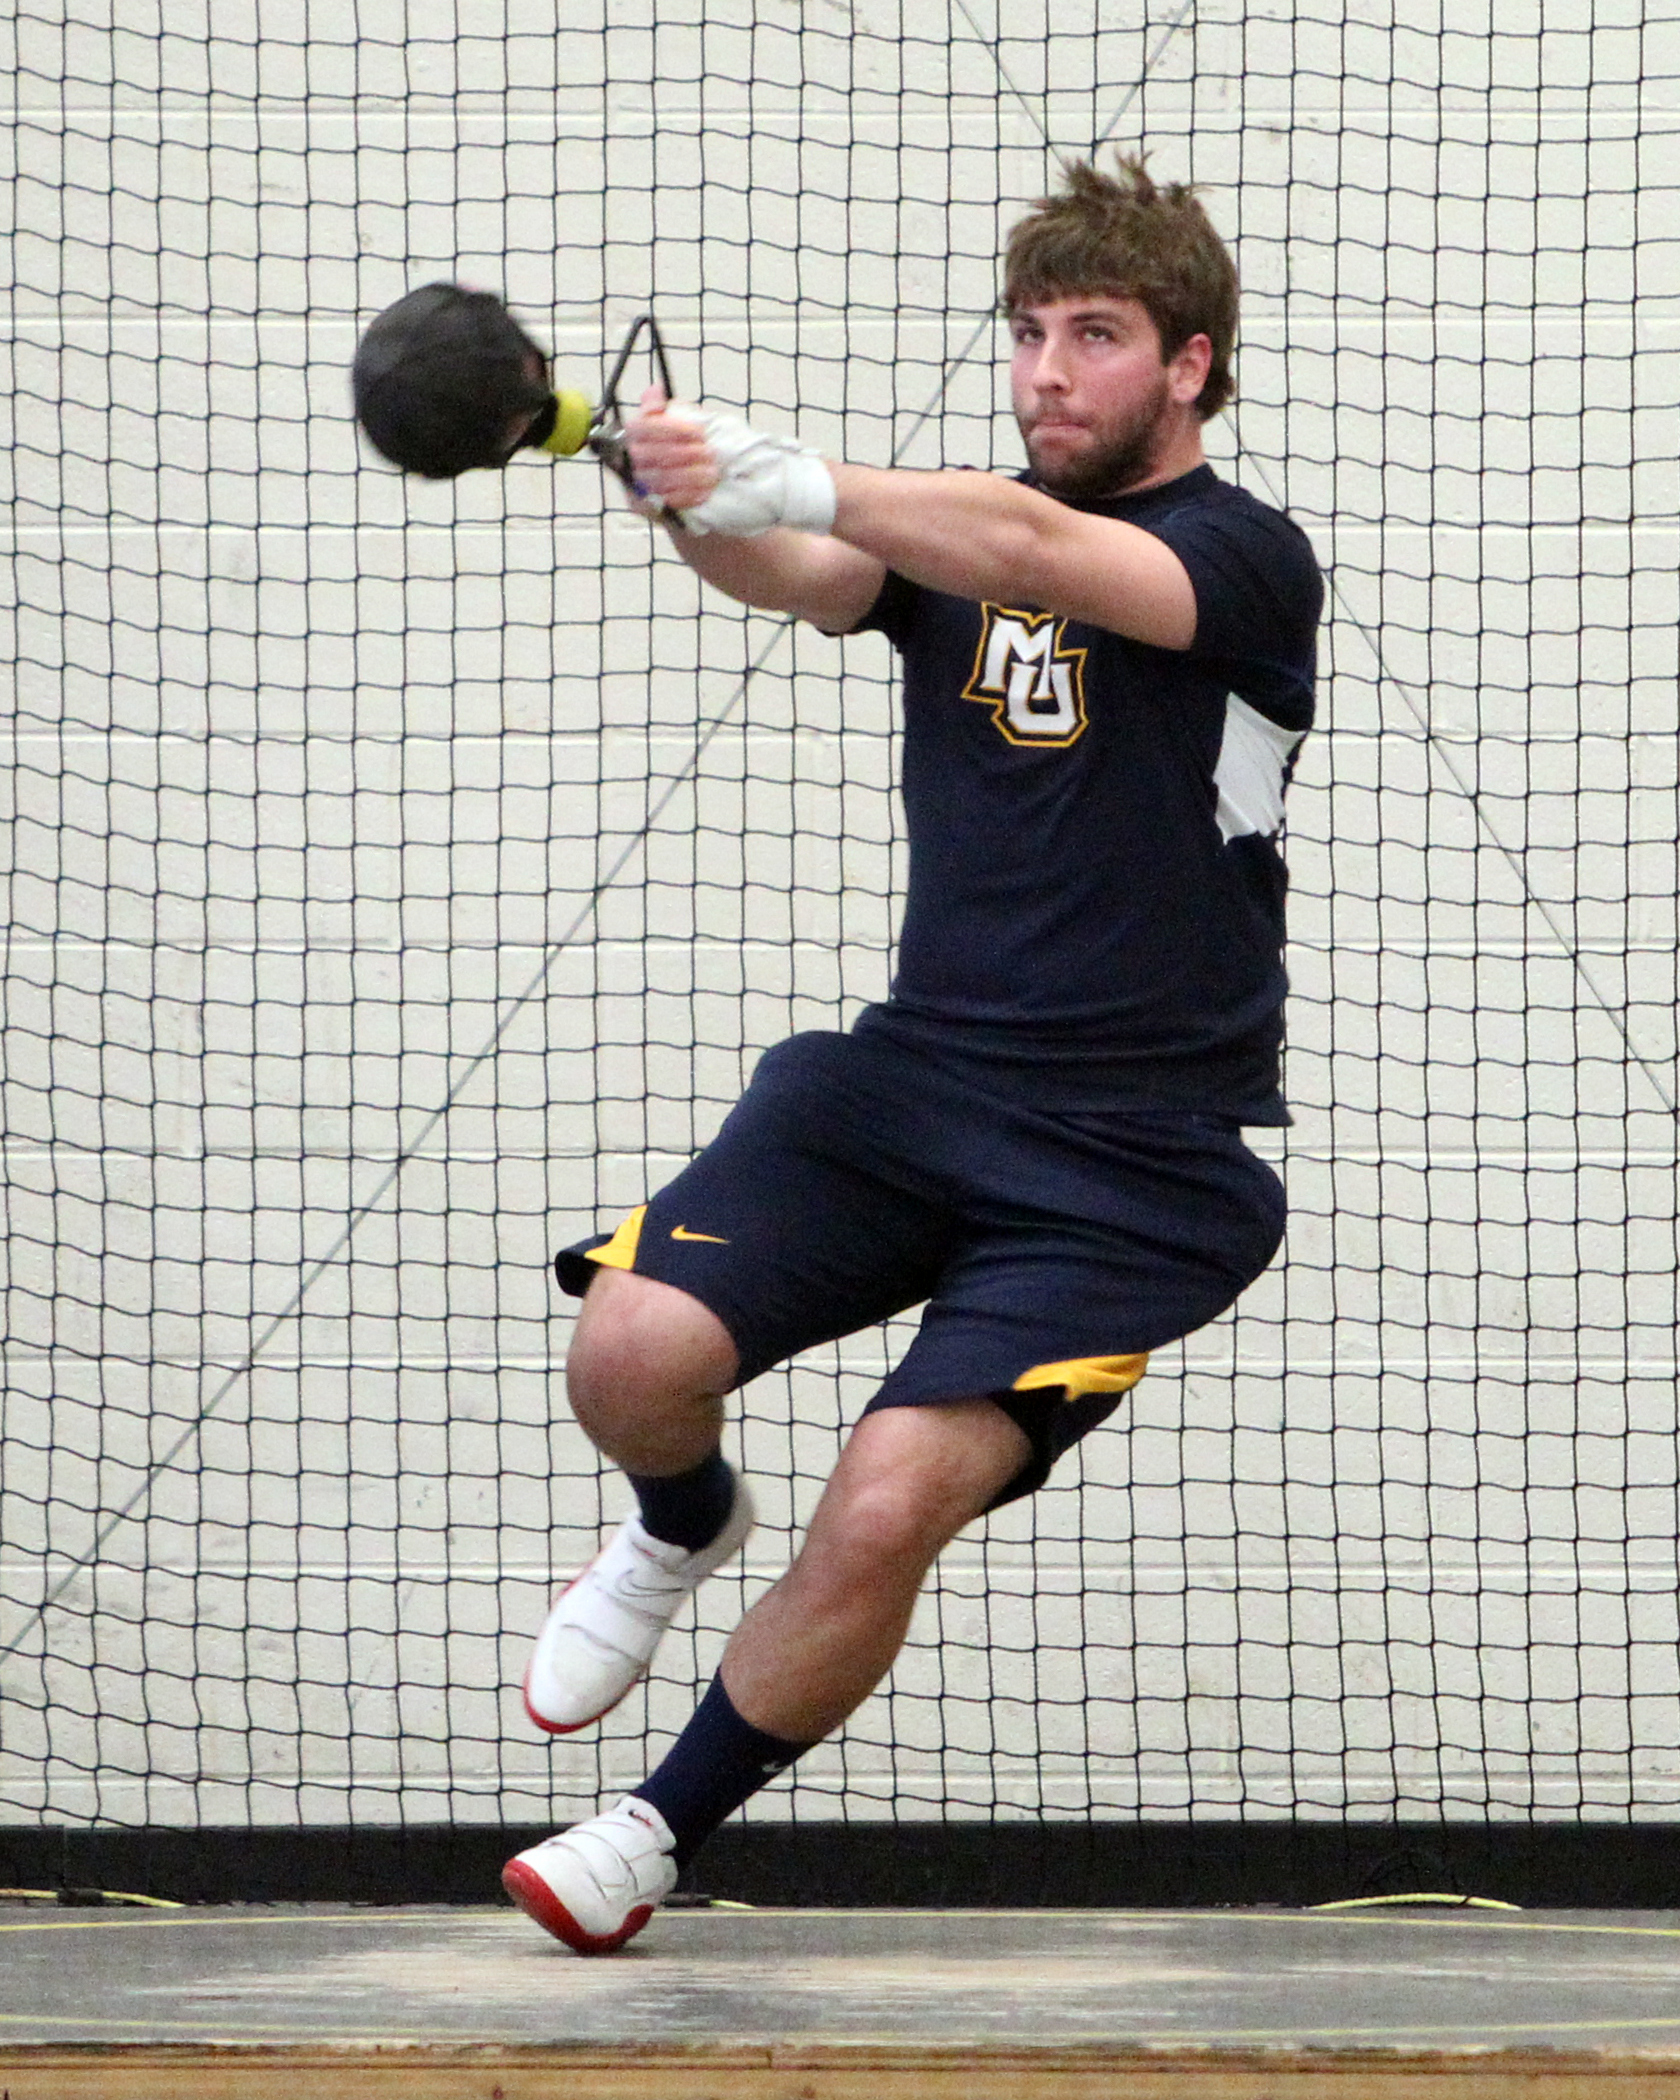 Junior Bret Hardin and the rest of the Marquette throwers will see their first action of 2012-13.